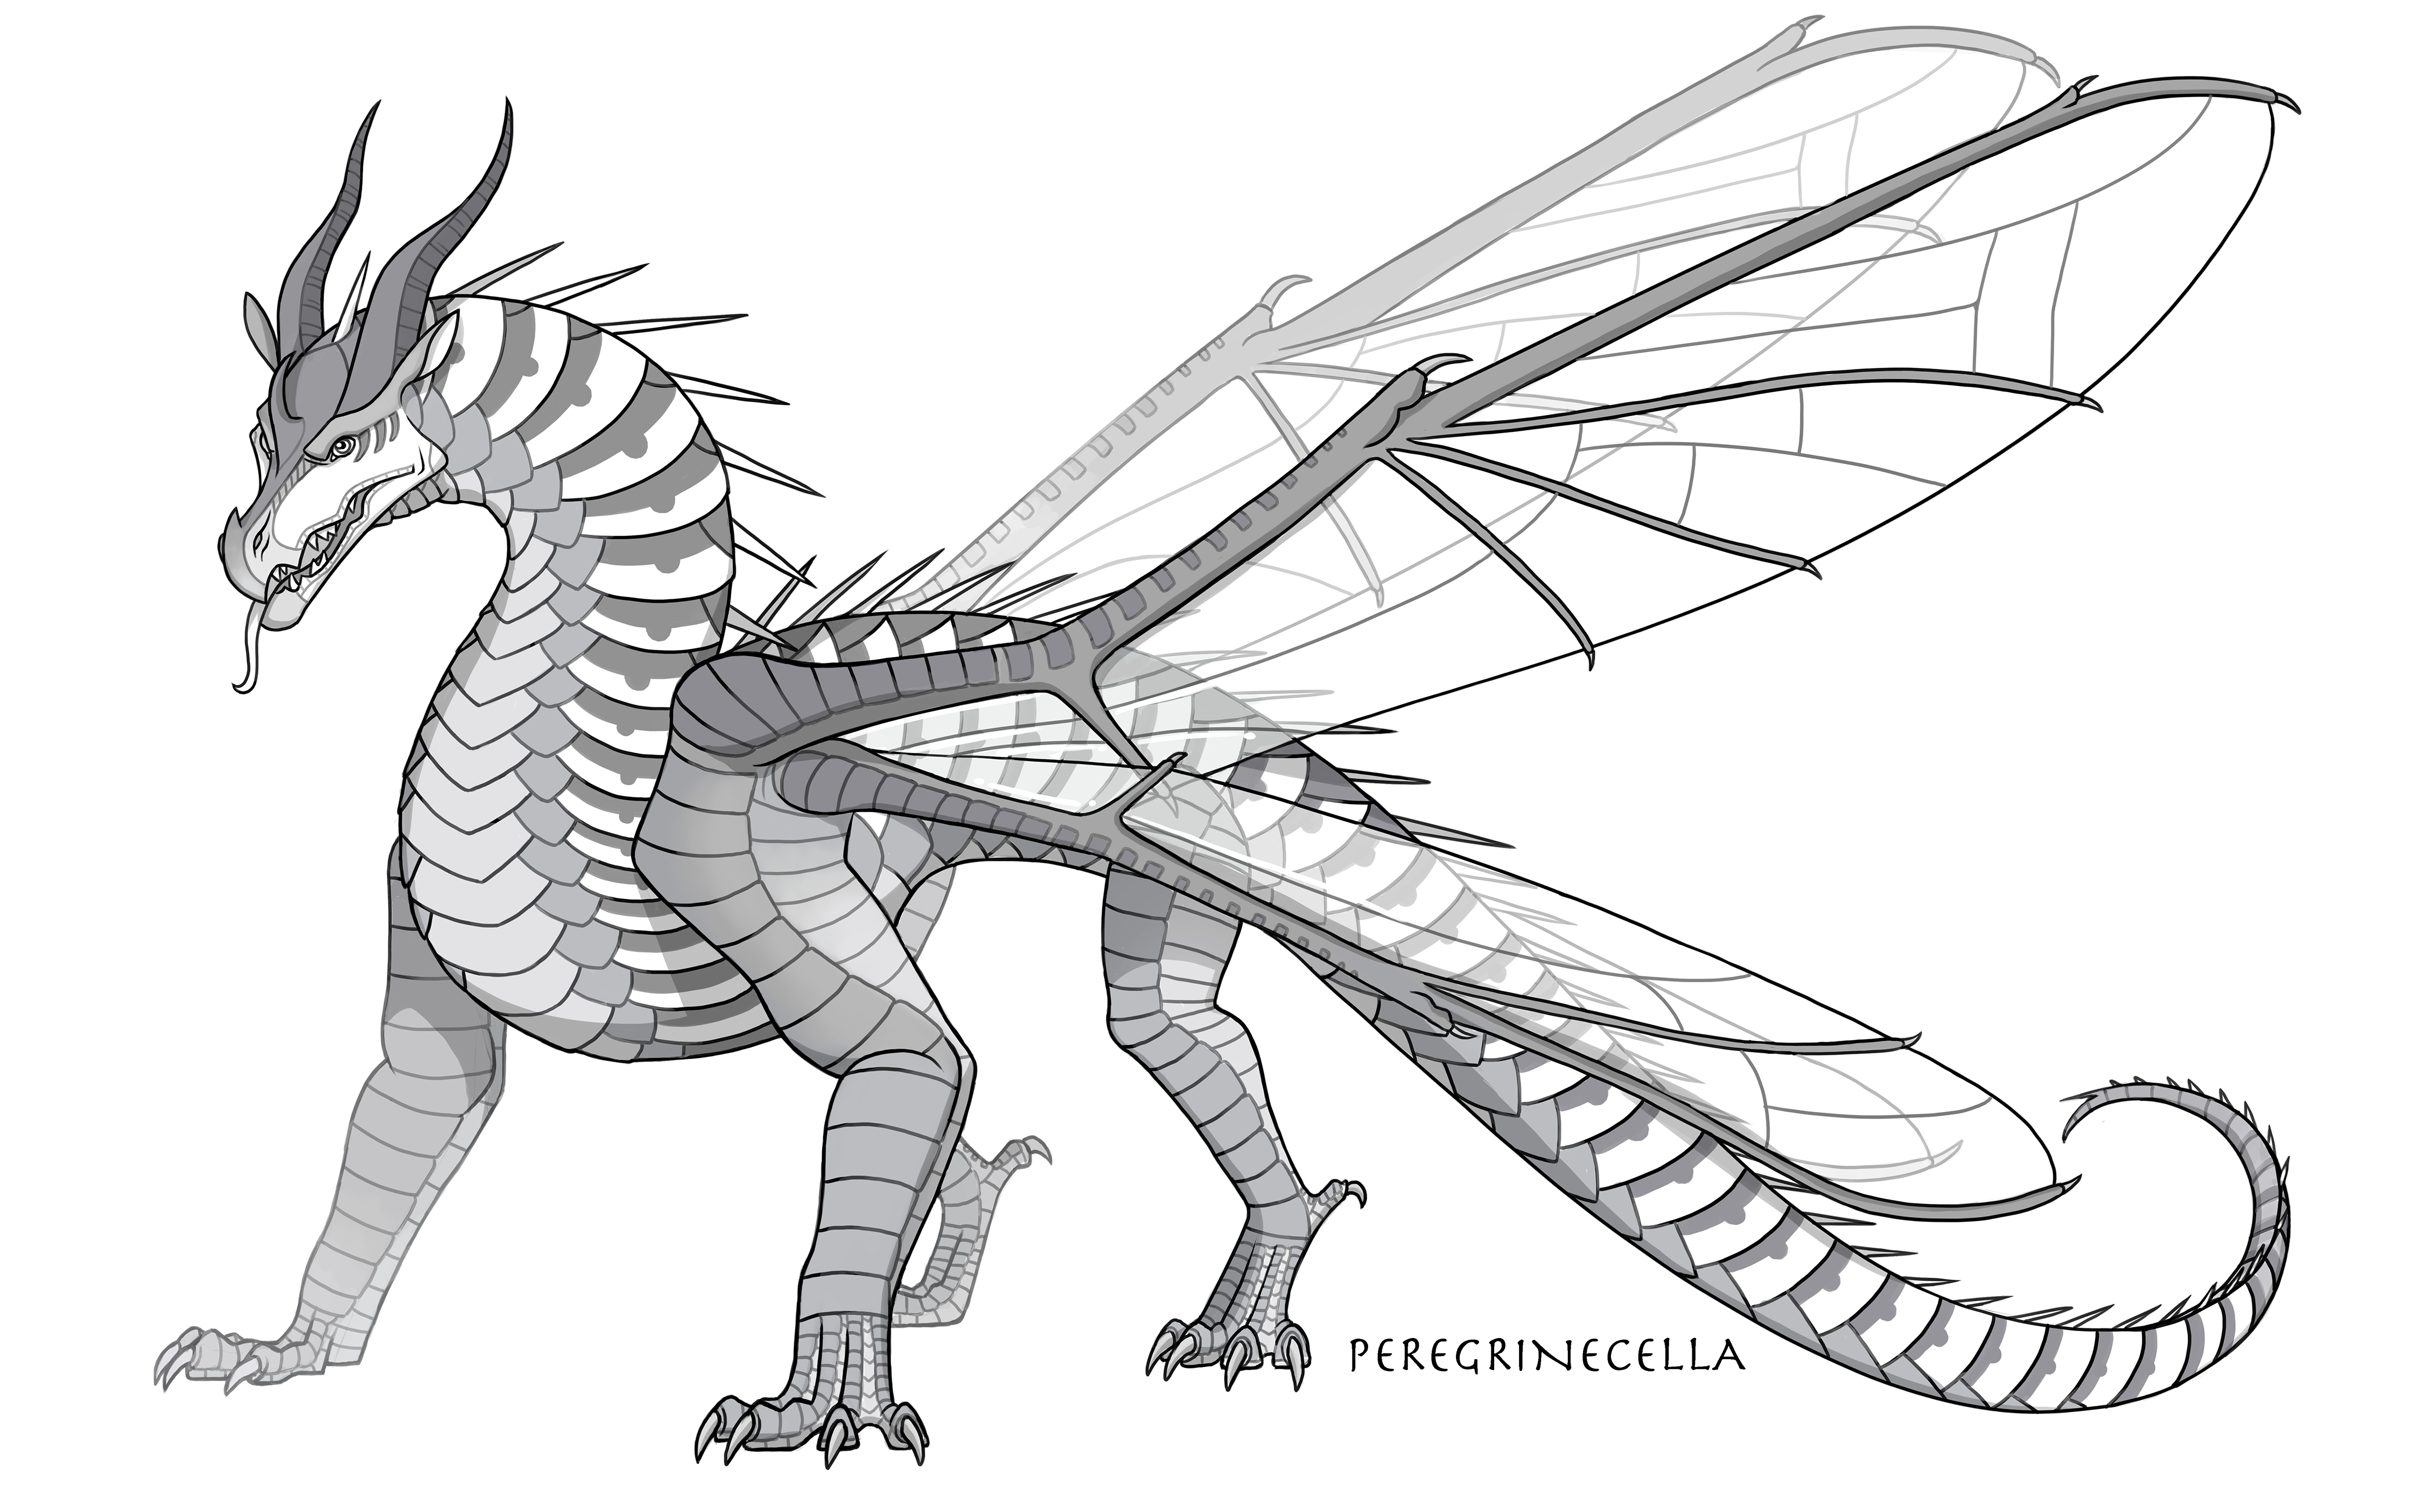 Hivewing Base By Peregrinecella On Deviantart In 2020 Wings Of Fire Dragons Wings Of Fire Dragon Sketch